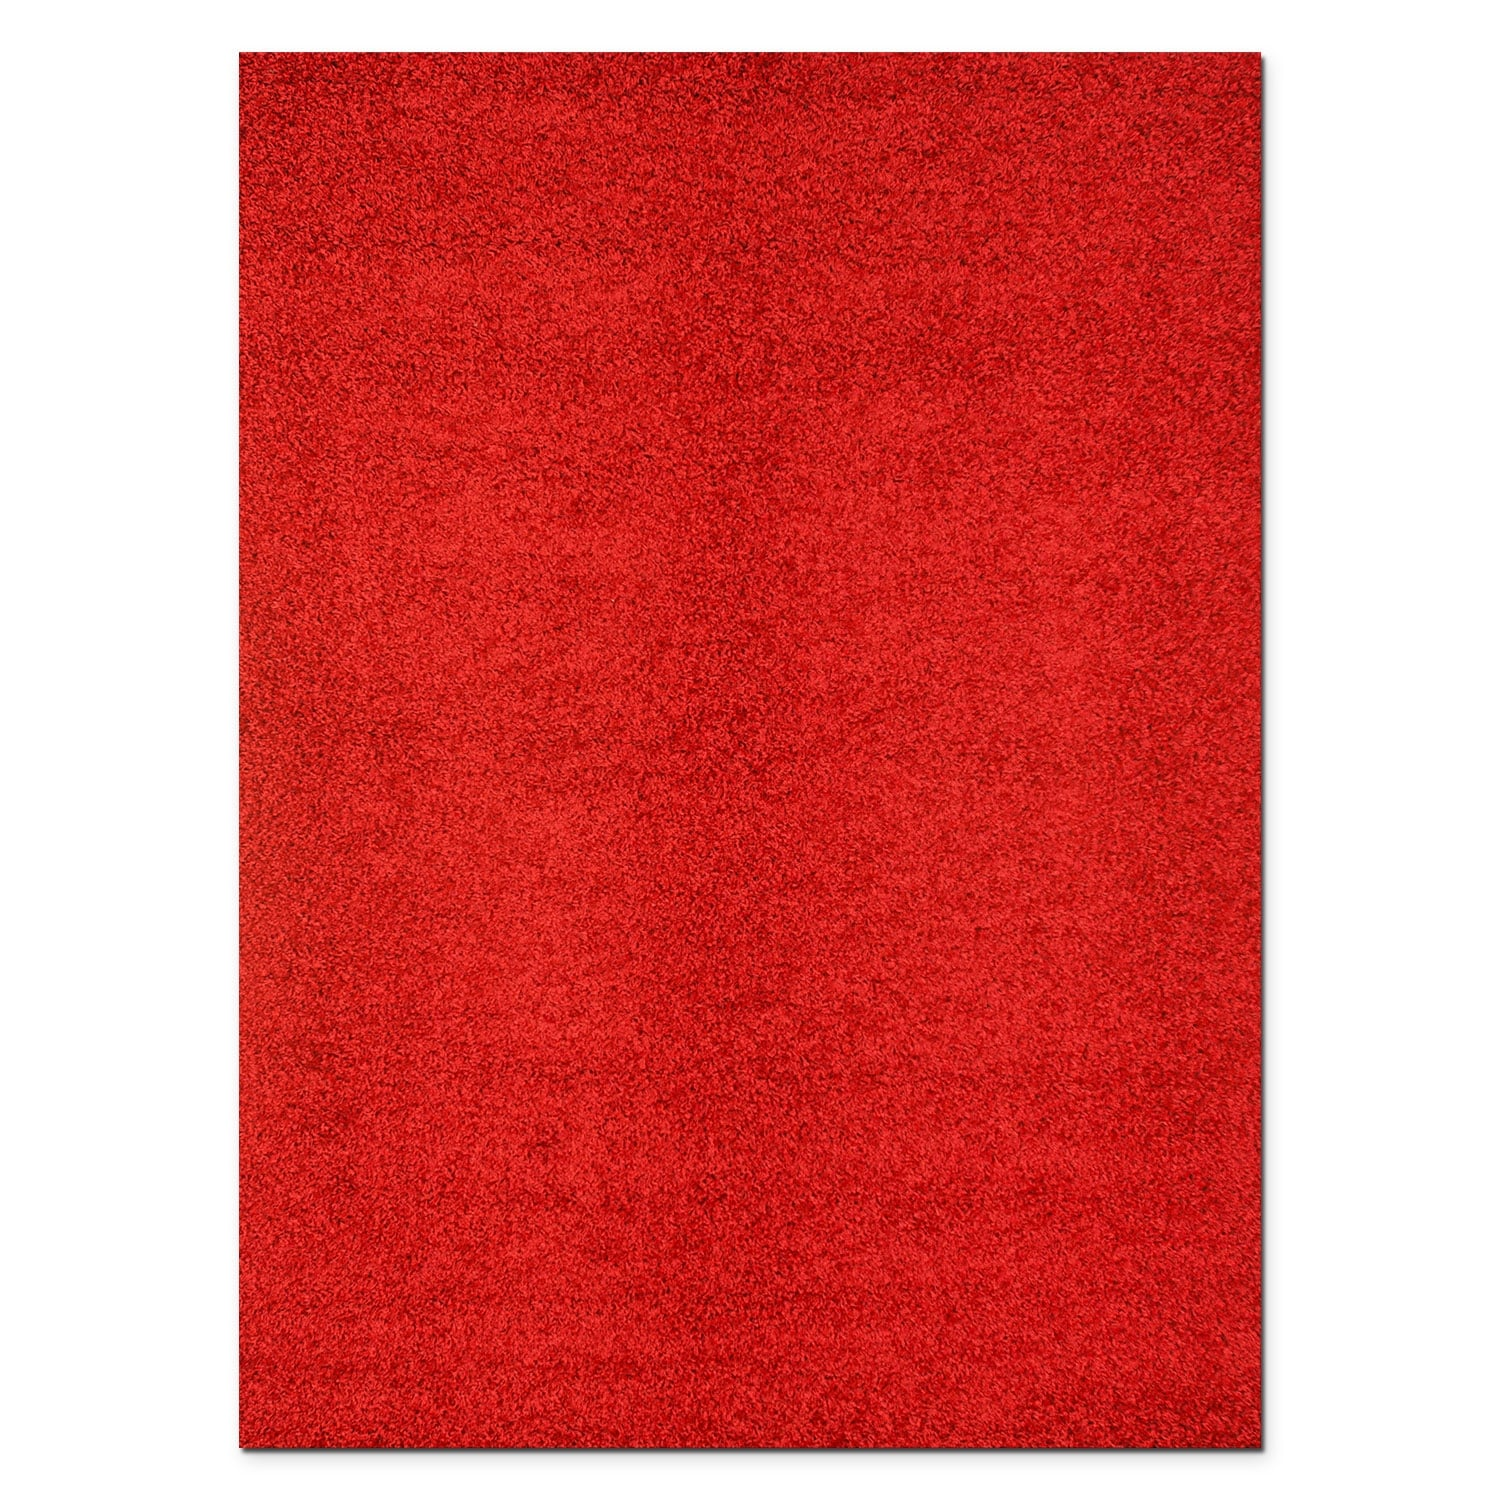 Rugs - Domino Red Shag Area Rug (5' x 8')